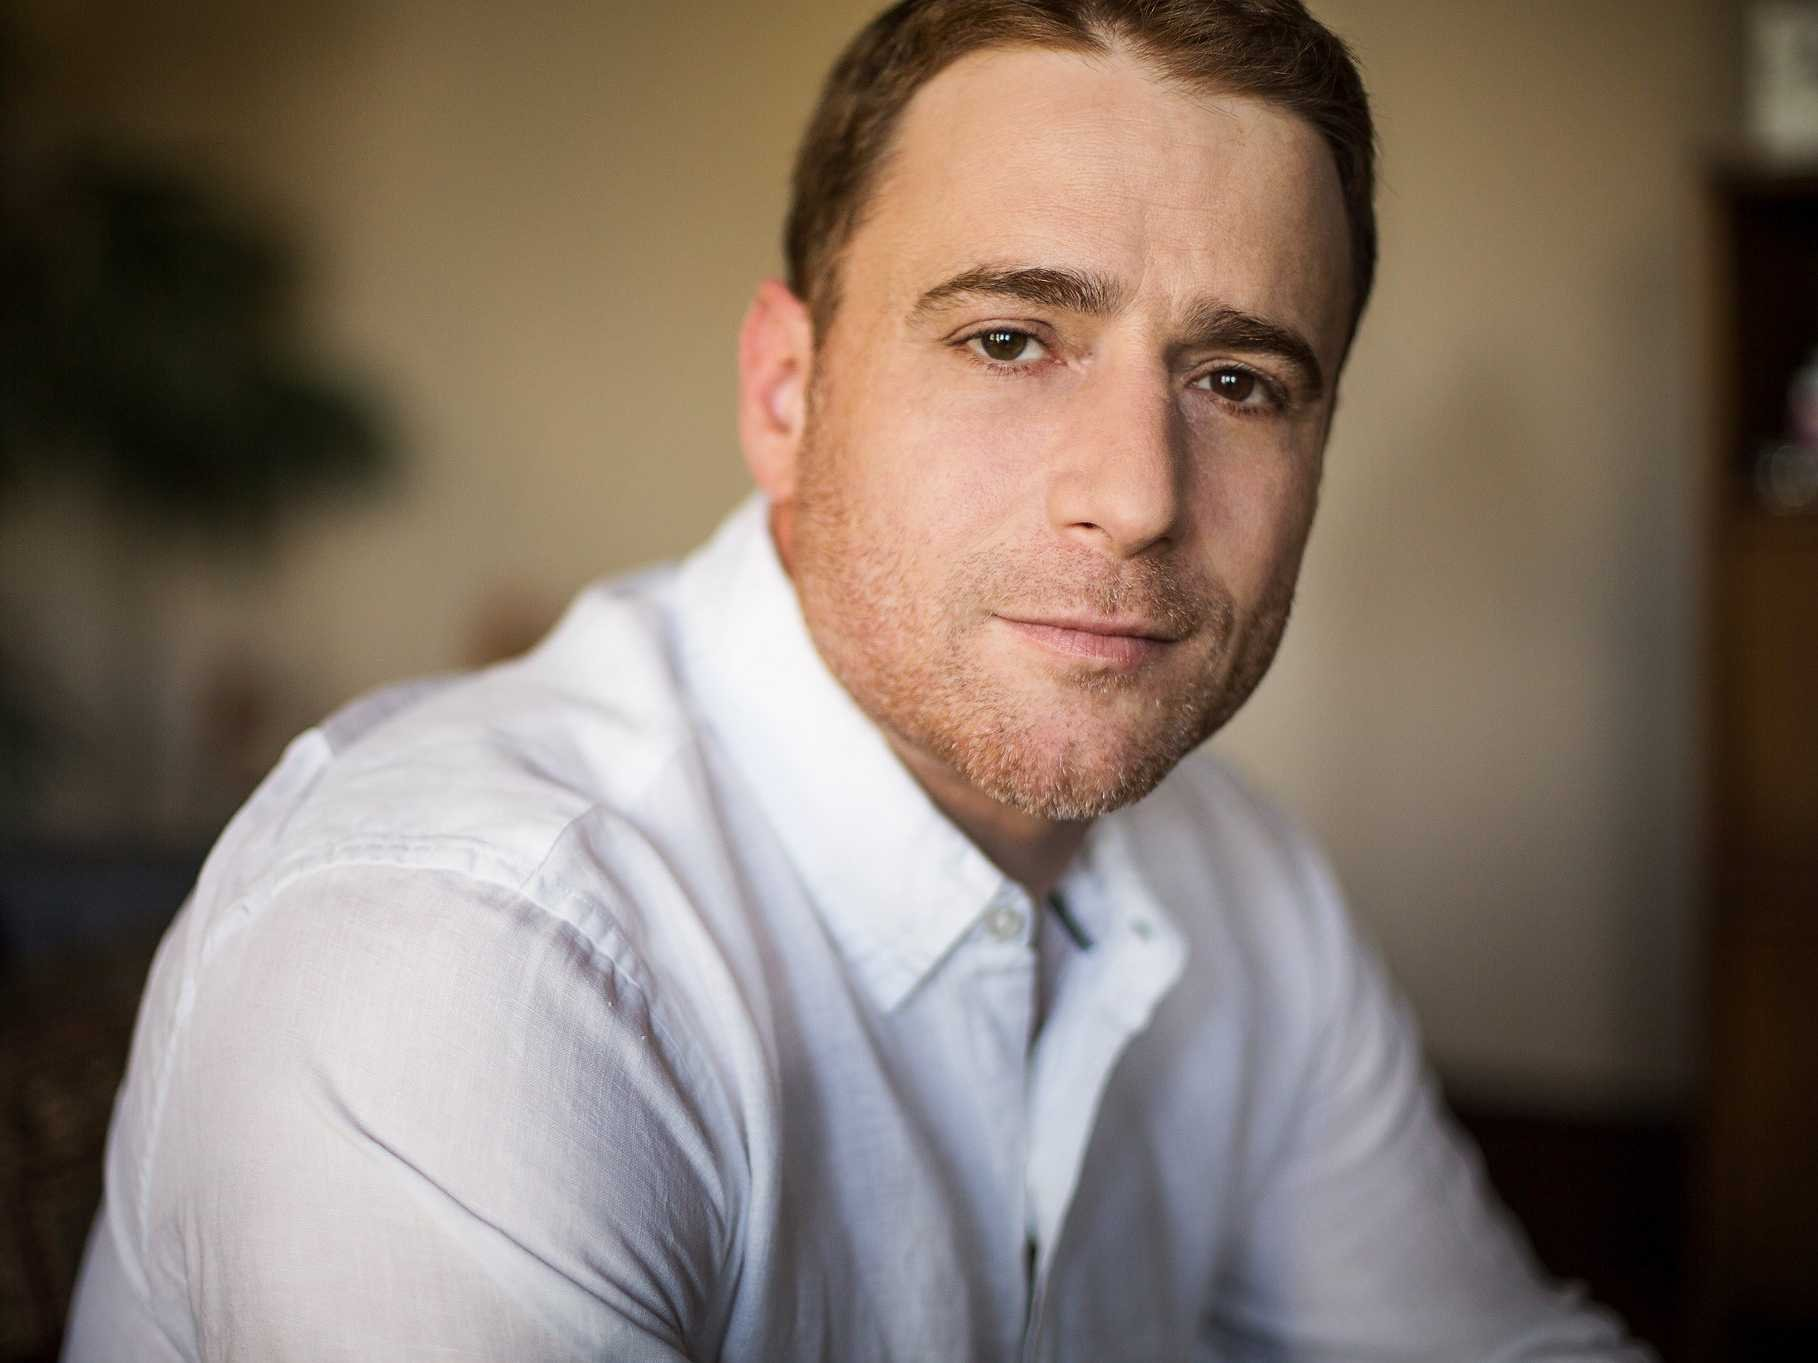 Slack is now worth $3.8 billion dollars